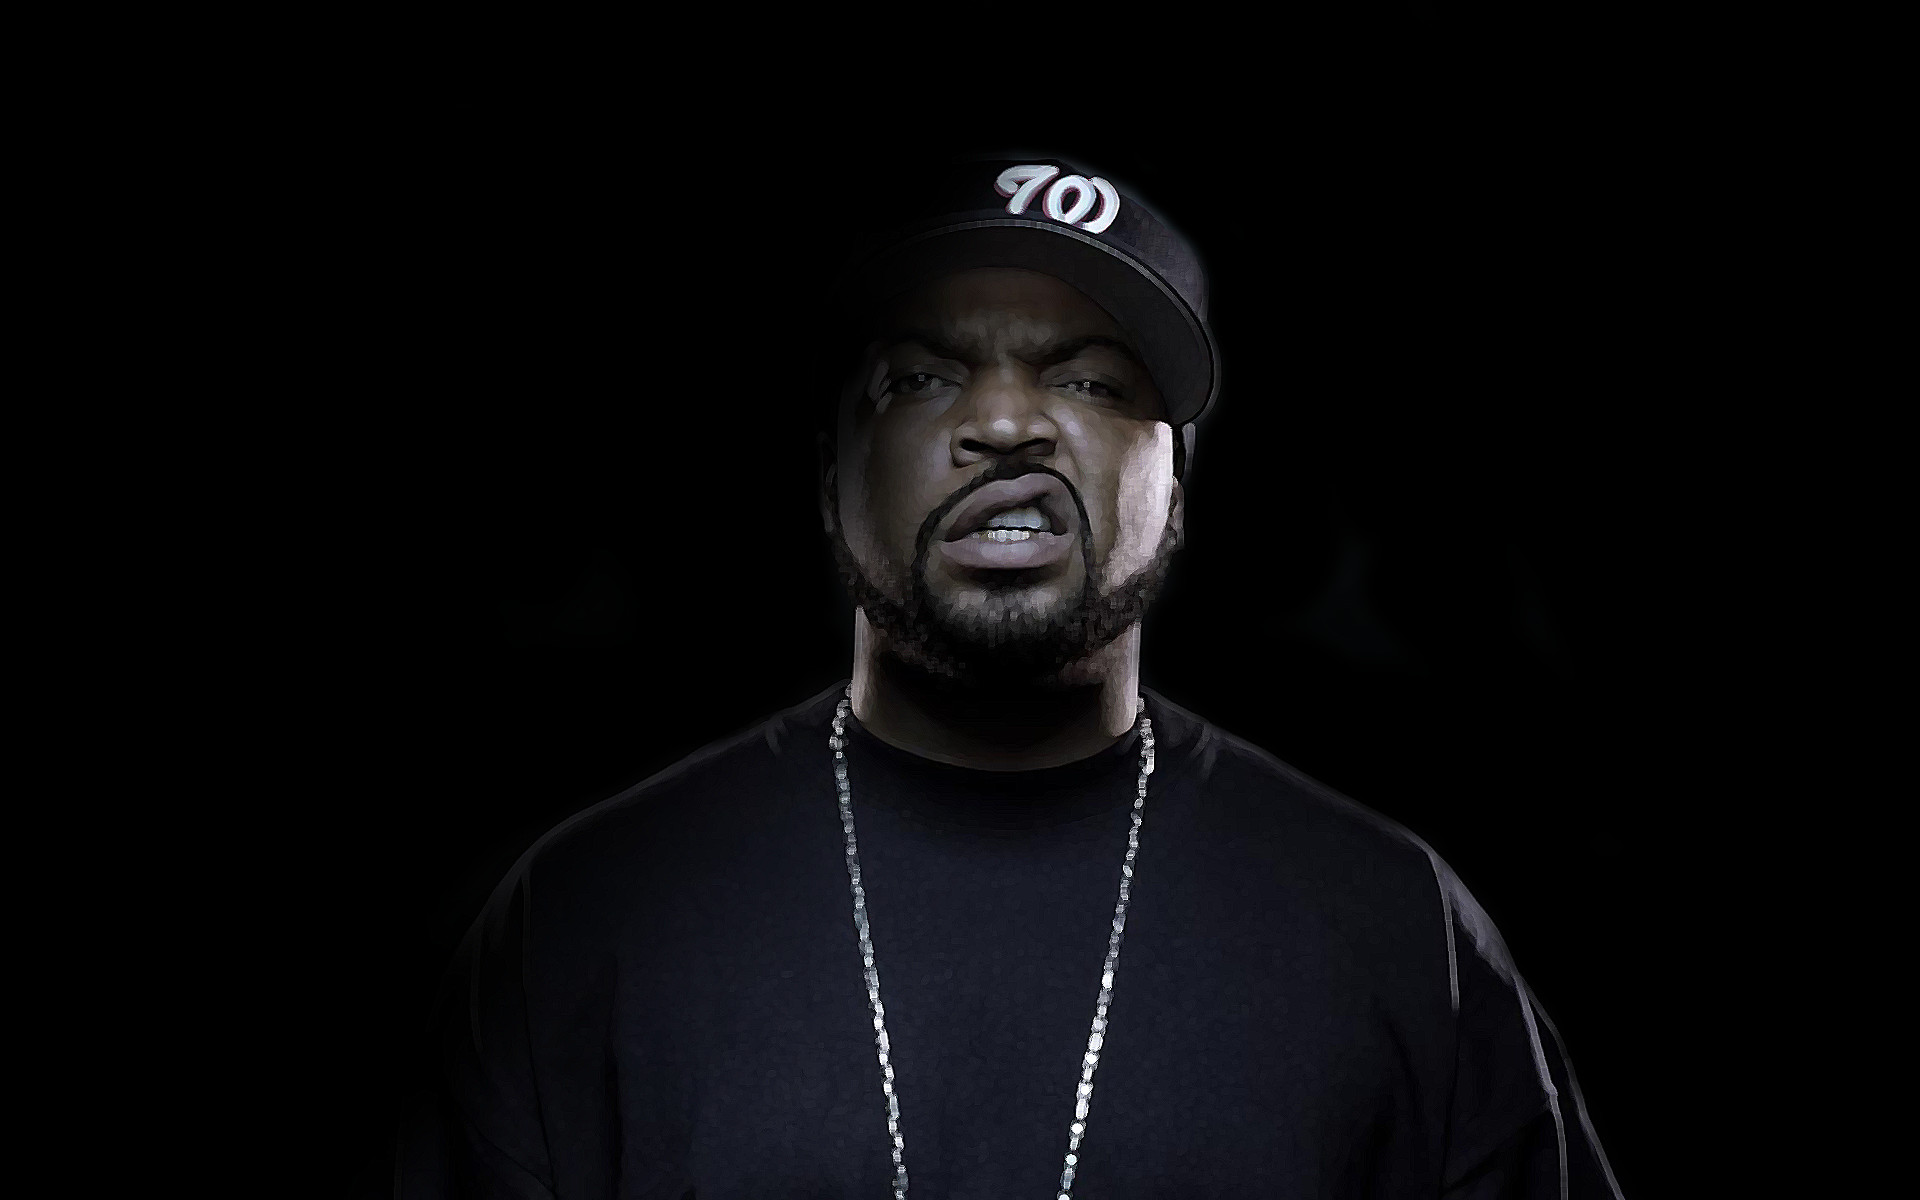 … Ice Cube Wallpaper Ice Cube Wallpapers HD …